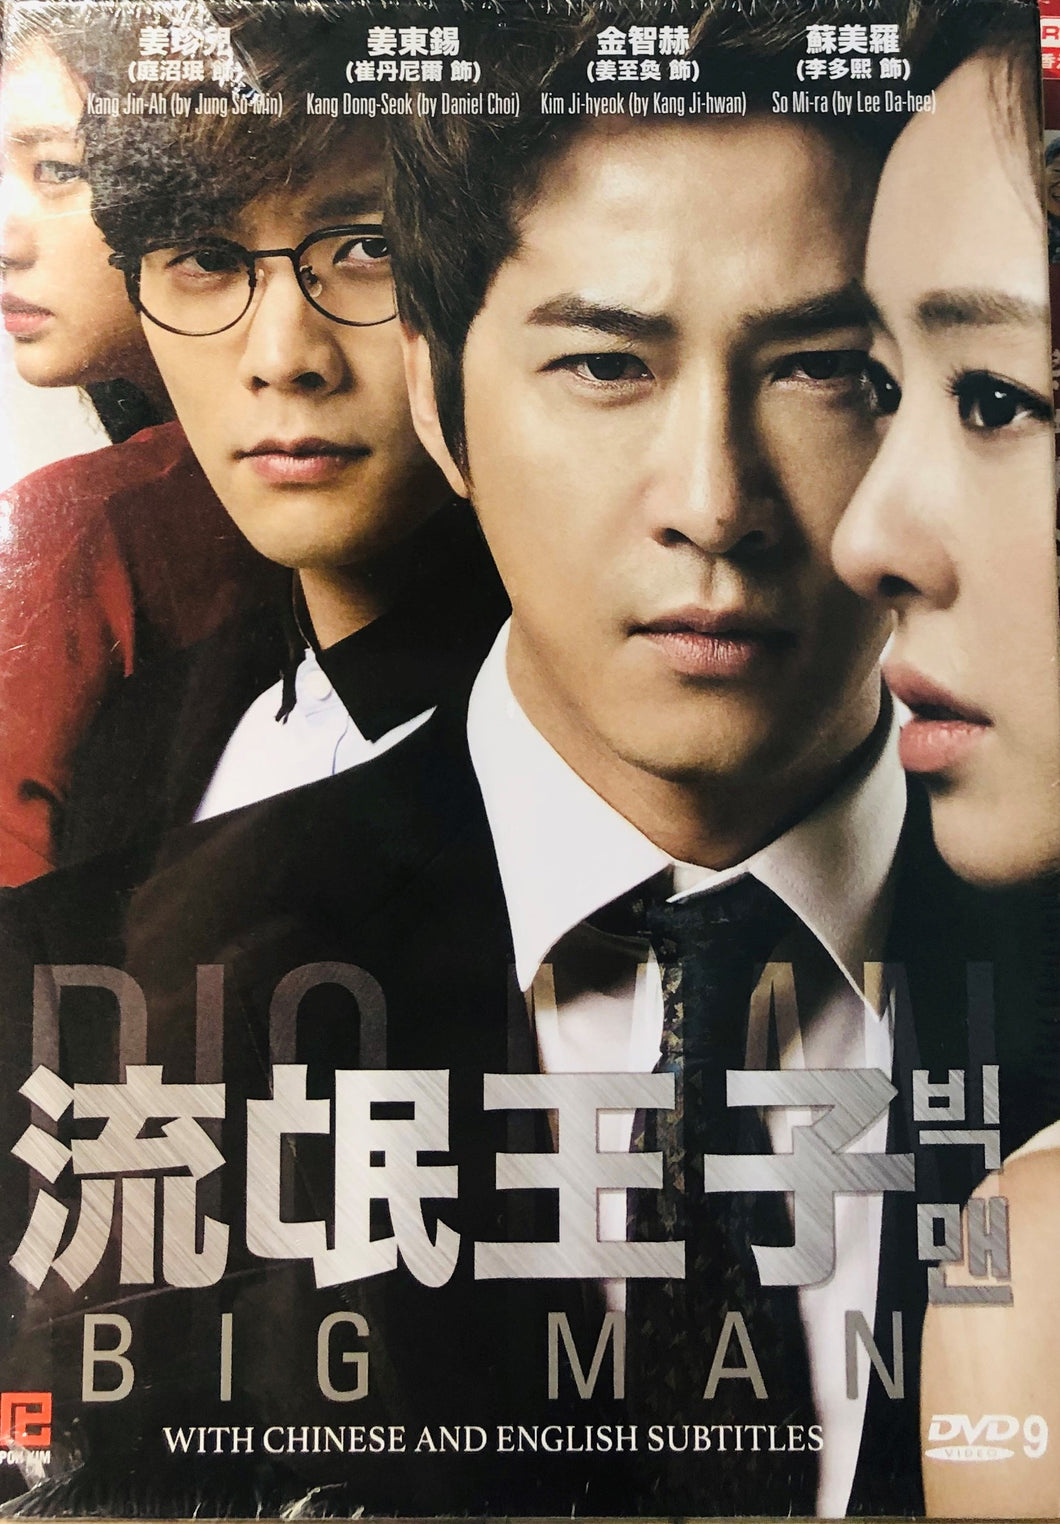 BIG MAN 2013 (KOREAN DRAMA) 1-16 EPISODES WITH ENGLISH SUBTITLES (ALL REGION) 流氓王子